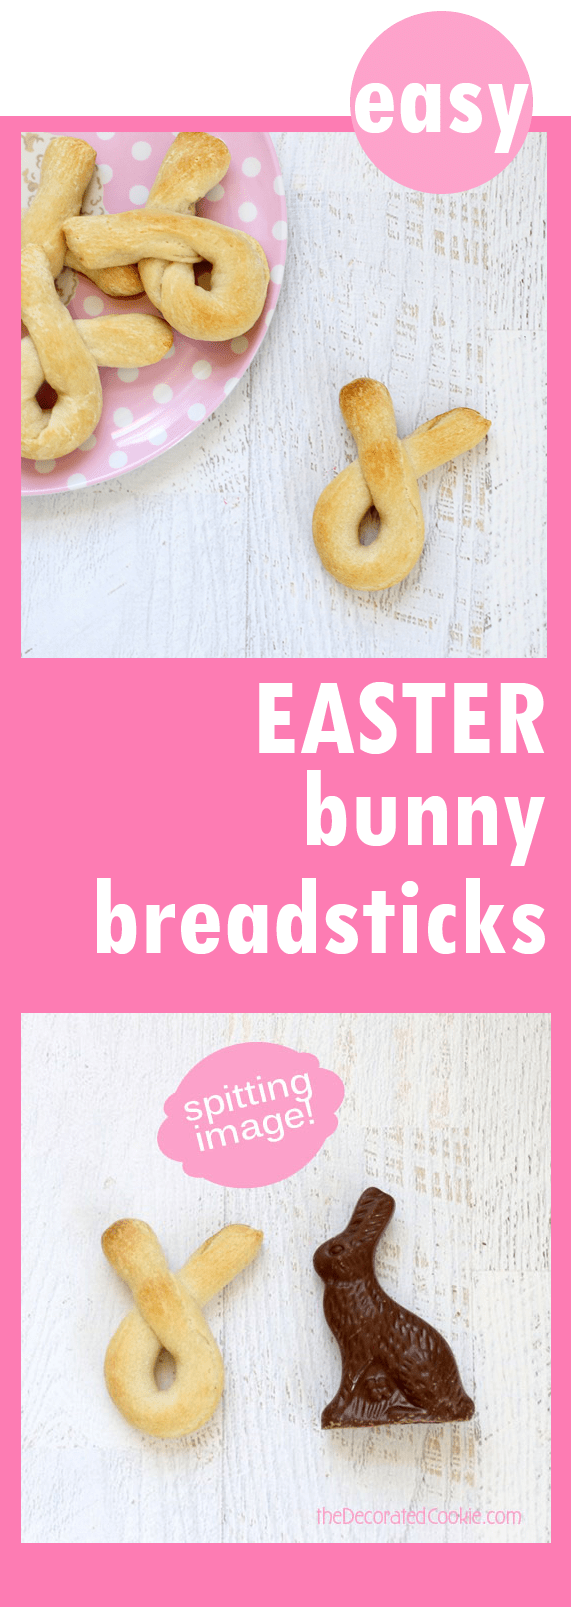 easy bunny breadsticks for Easter dinner